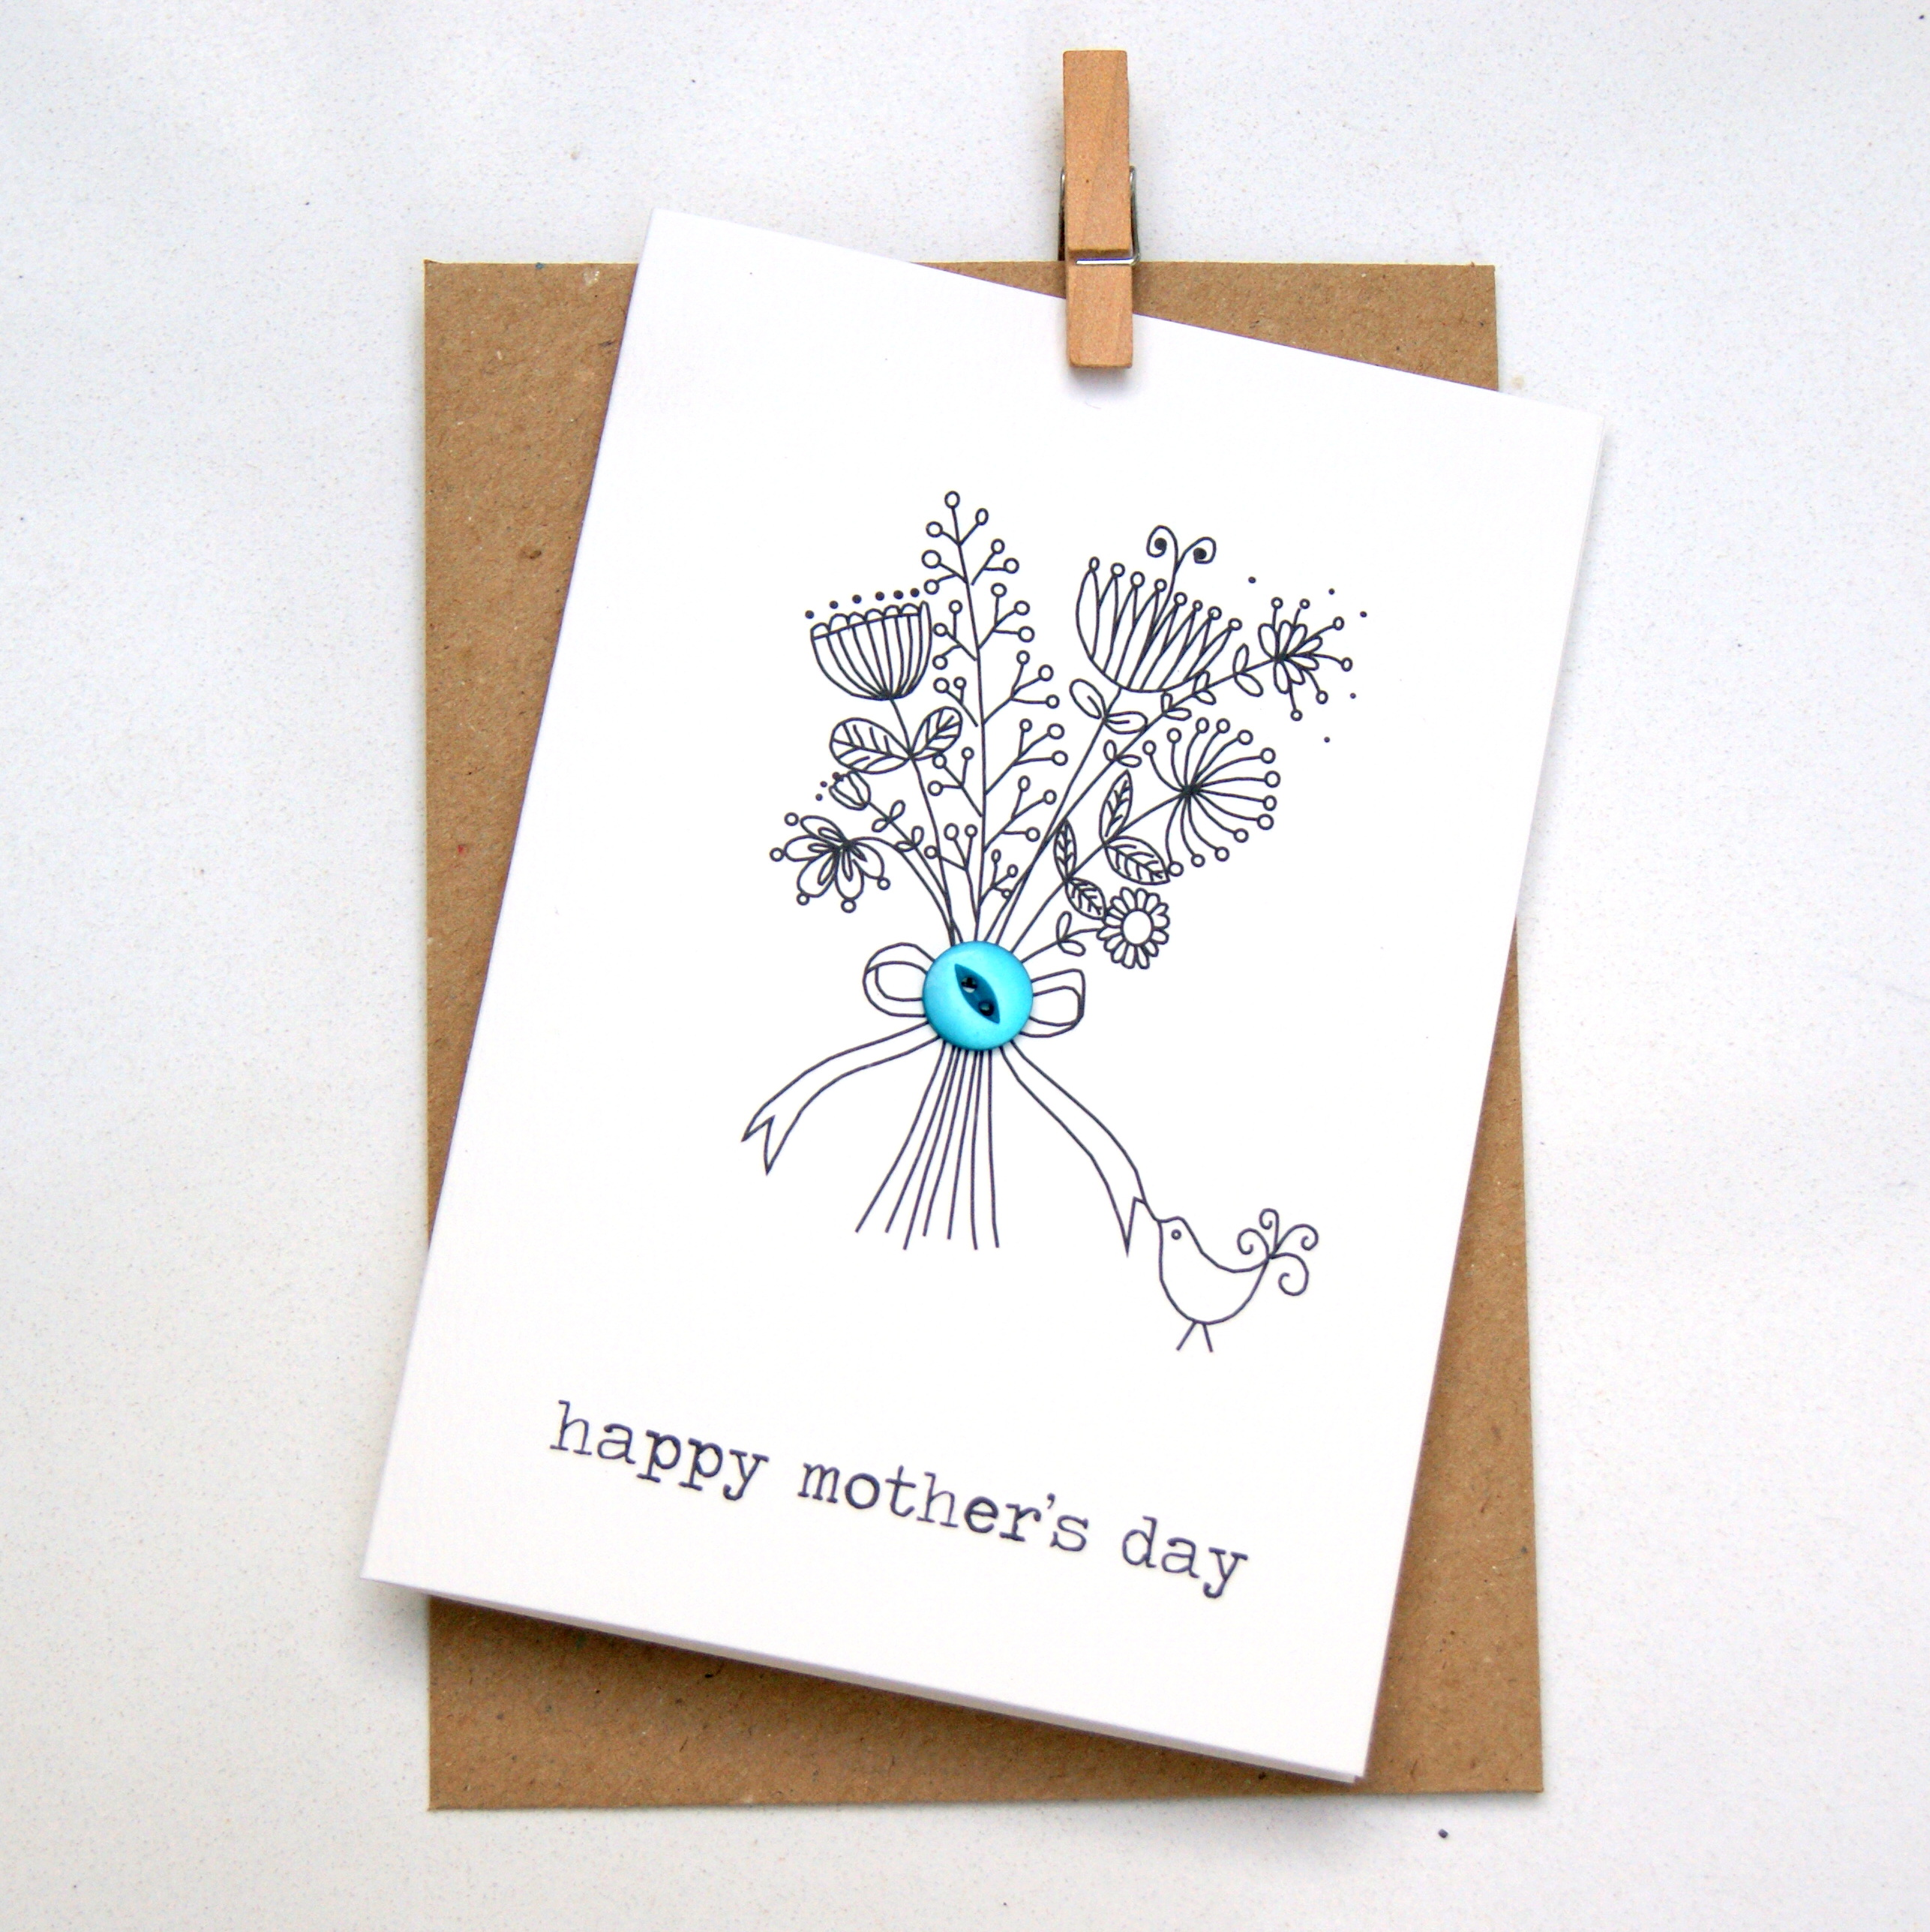 happy mother's day button box card from Hummingbird Cards